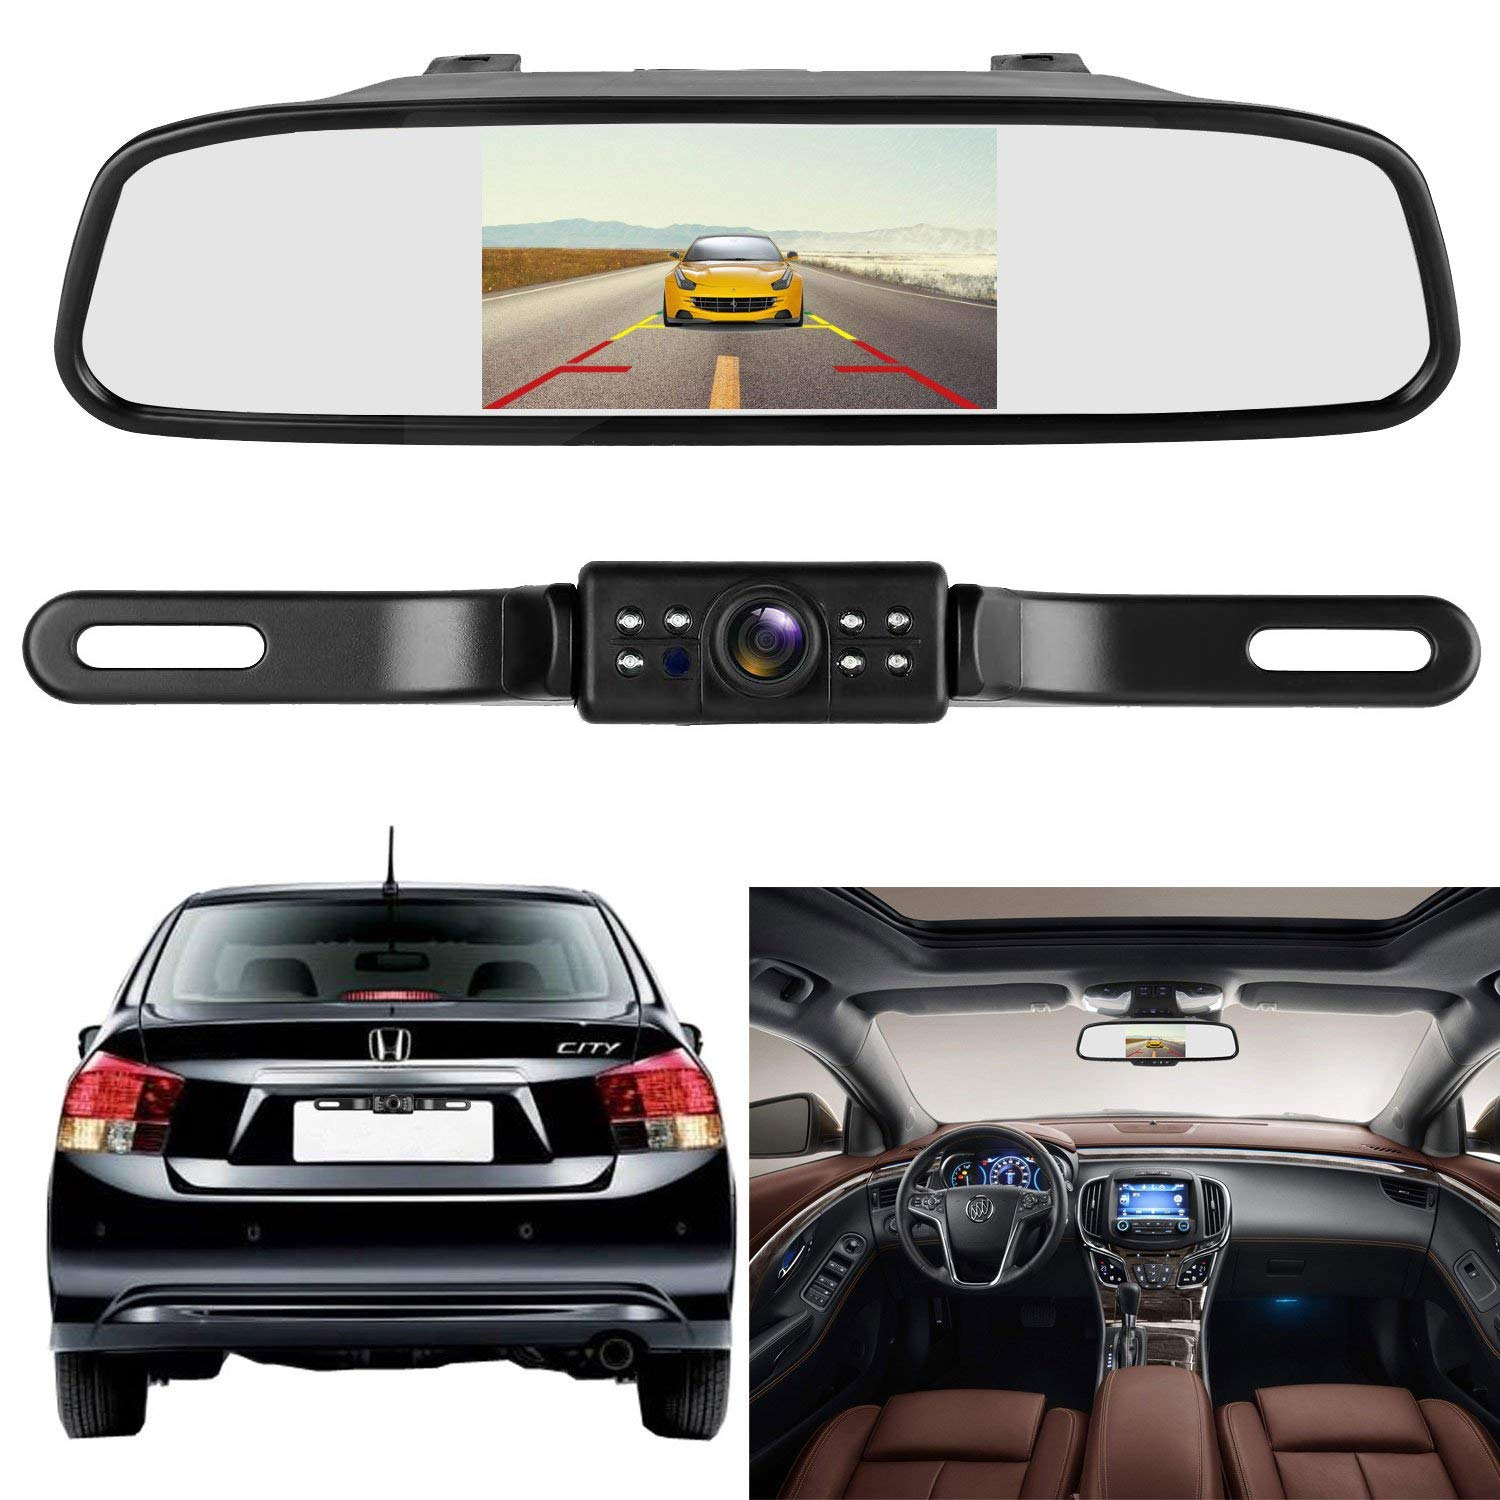 HD 720P Backup Camera System With 4.3'' Mirror Monitor Kit For Cars,SUVs,Pickups,Trucks, Adjustable Rear/Front View Camera Super Night Vision,Guide Lines On/Off,IP69 Waterproof by Emmako